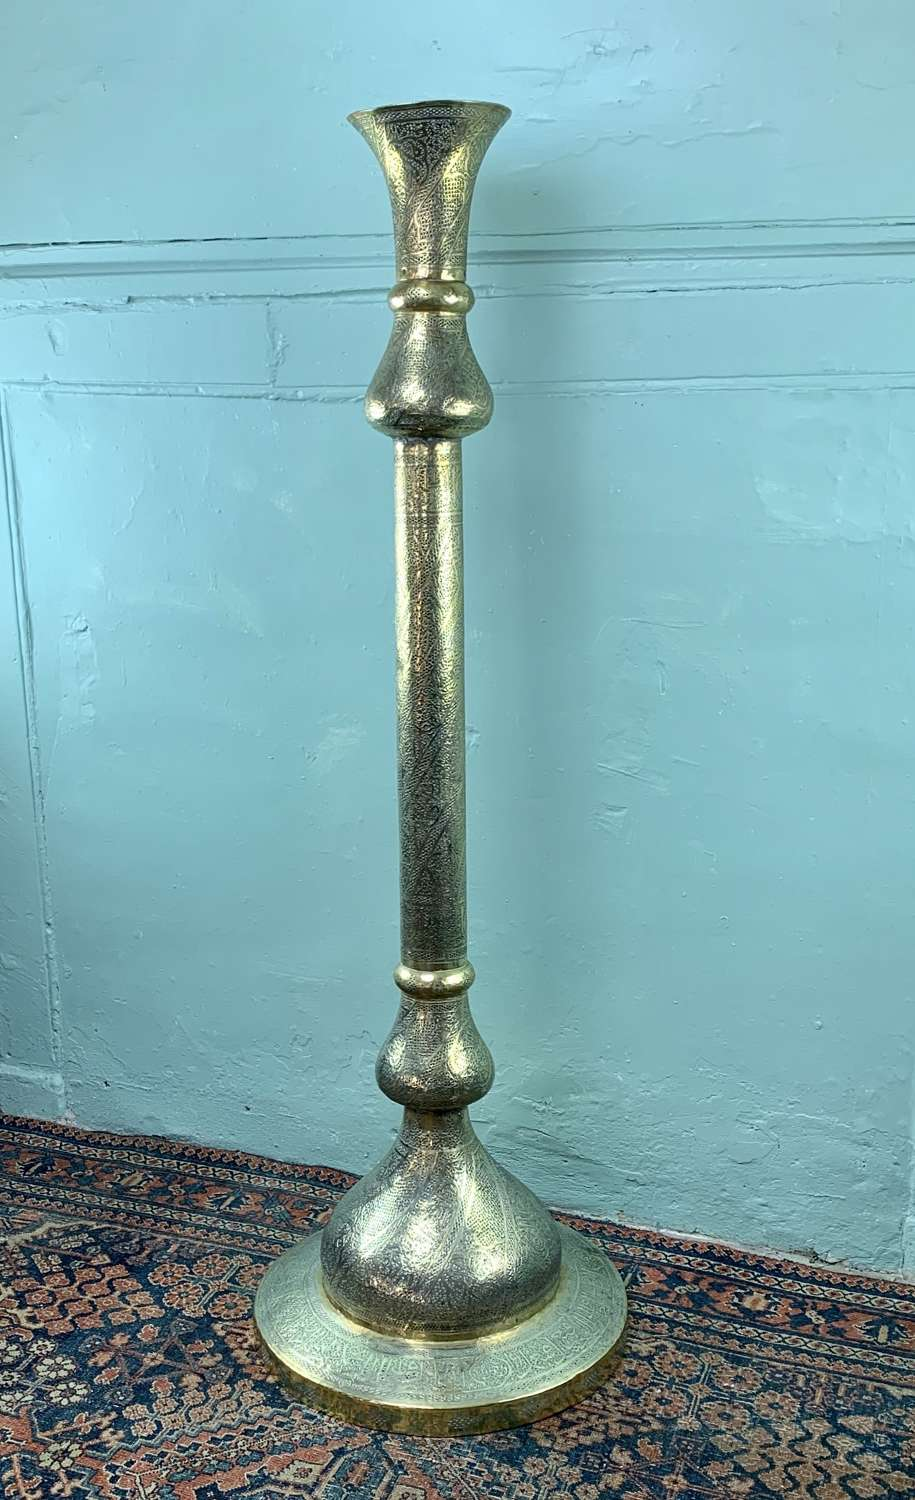 Cairoware Mamluk Revival Pierced Brass Floor Lamp